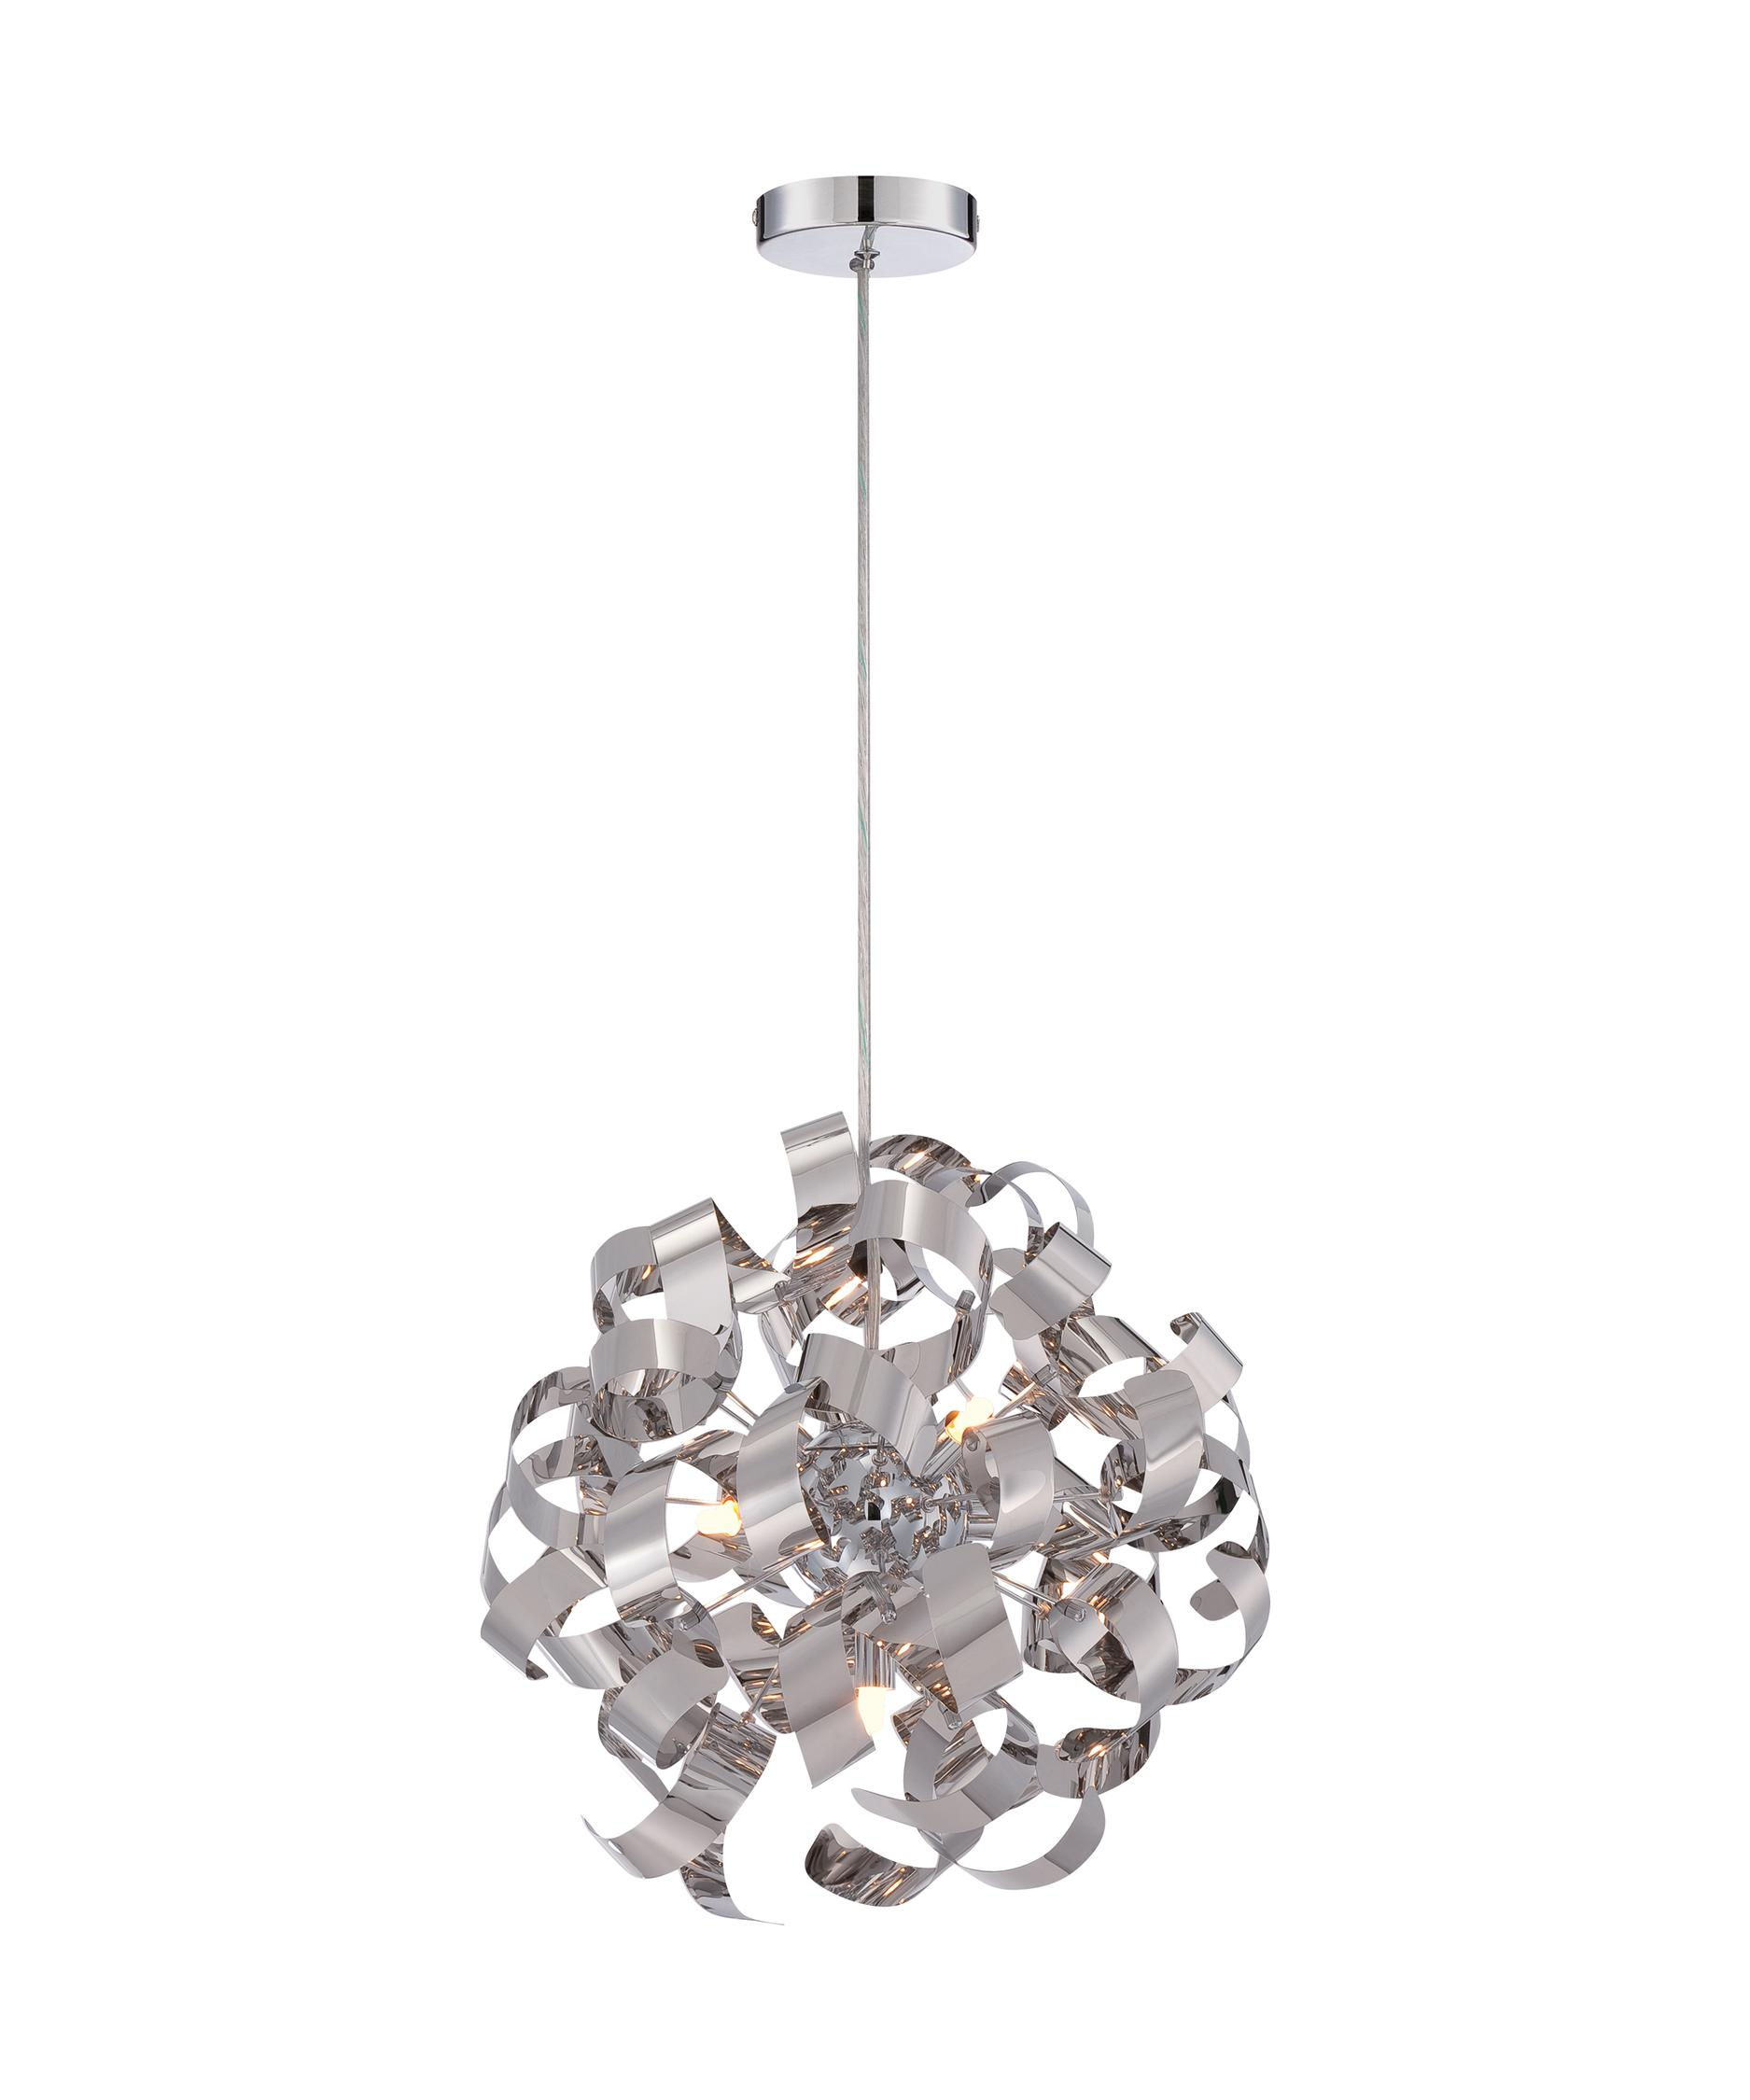 eclectic lighting fixtures. quoizel ribbons pendant eclectic lighting fixtures